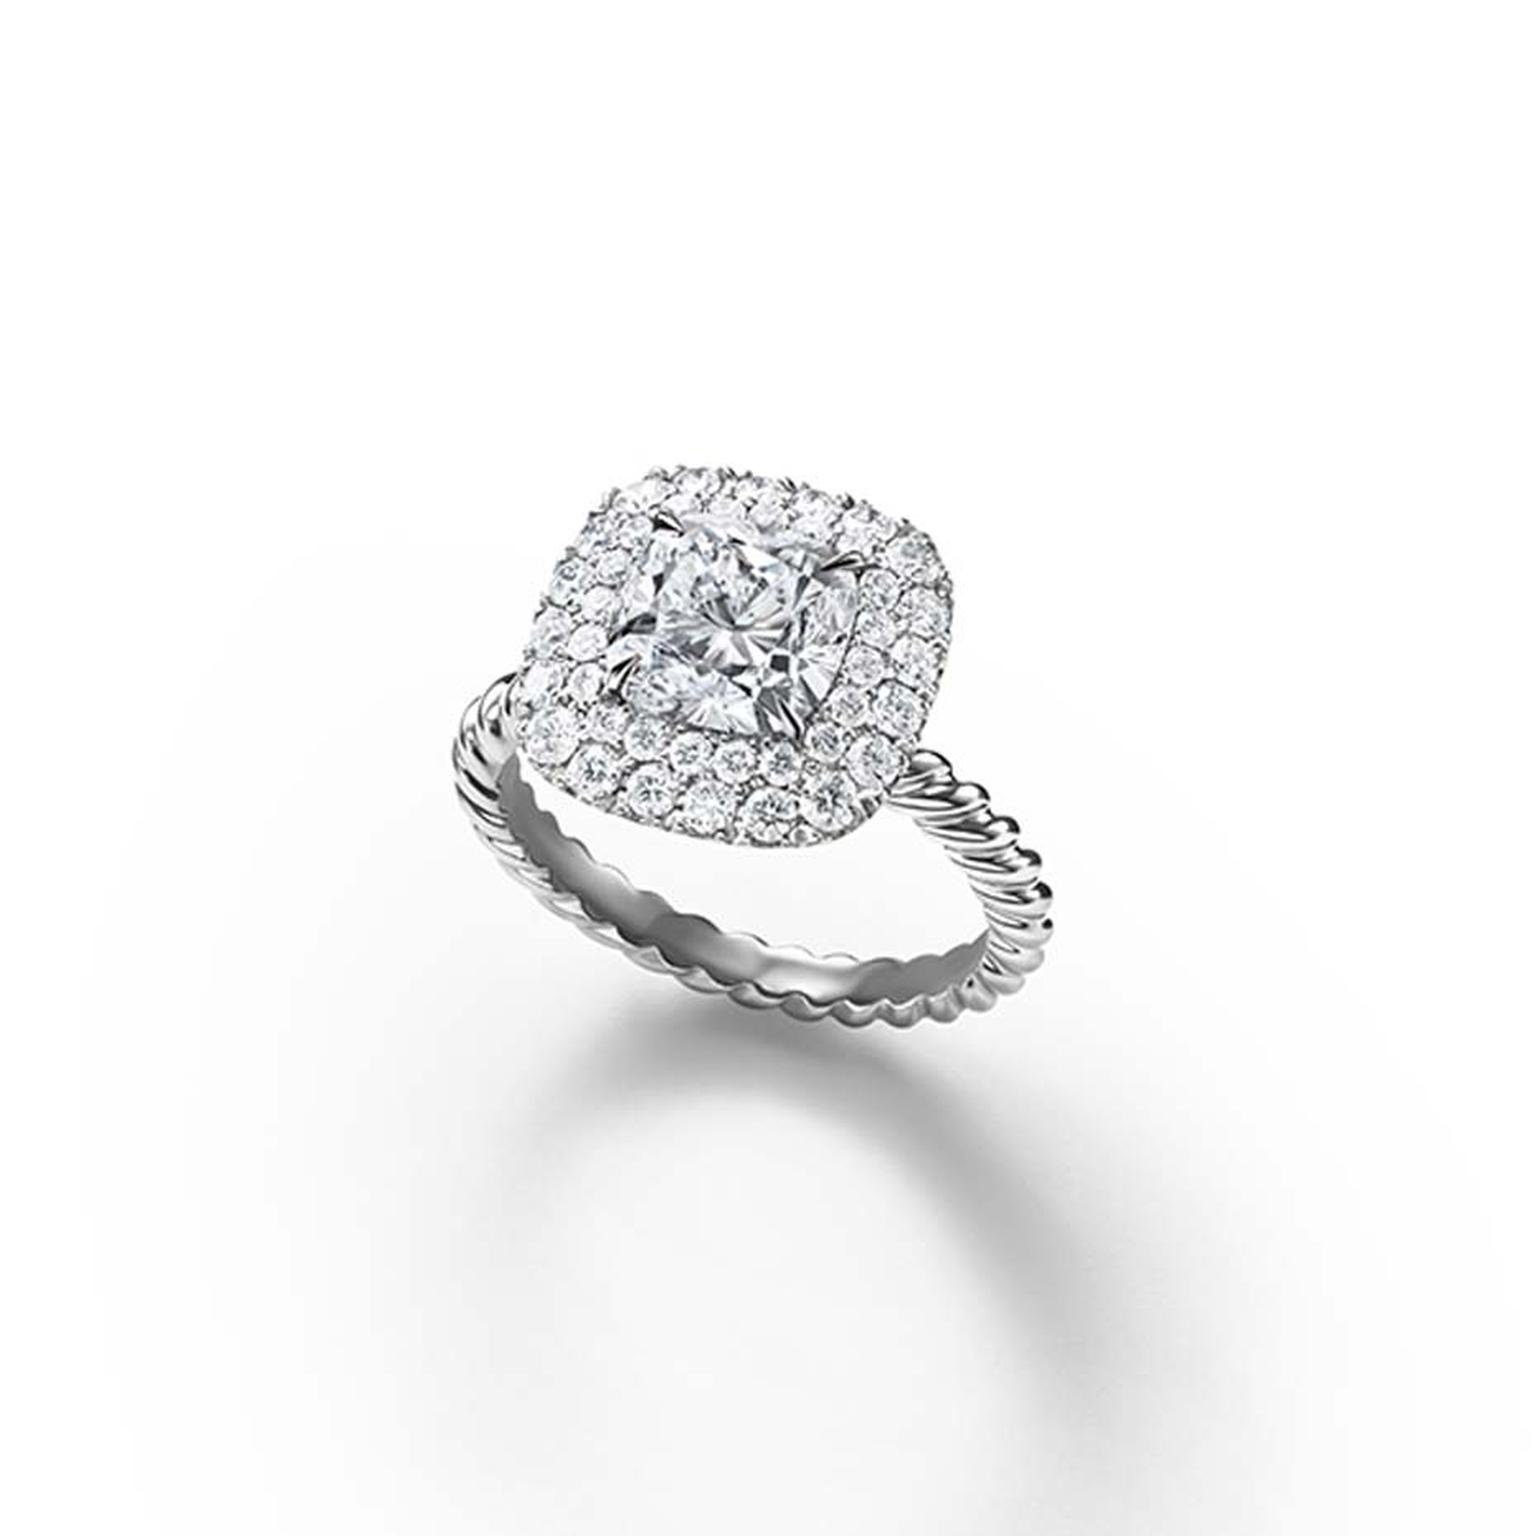 David Yurman vintage-style diamond engagement ring with a cable motif band.